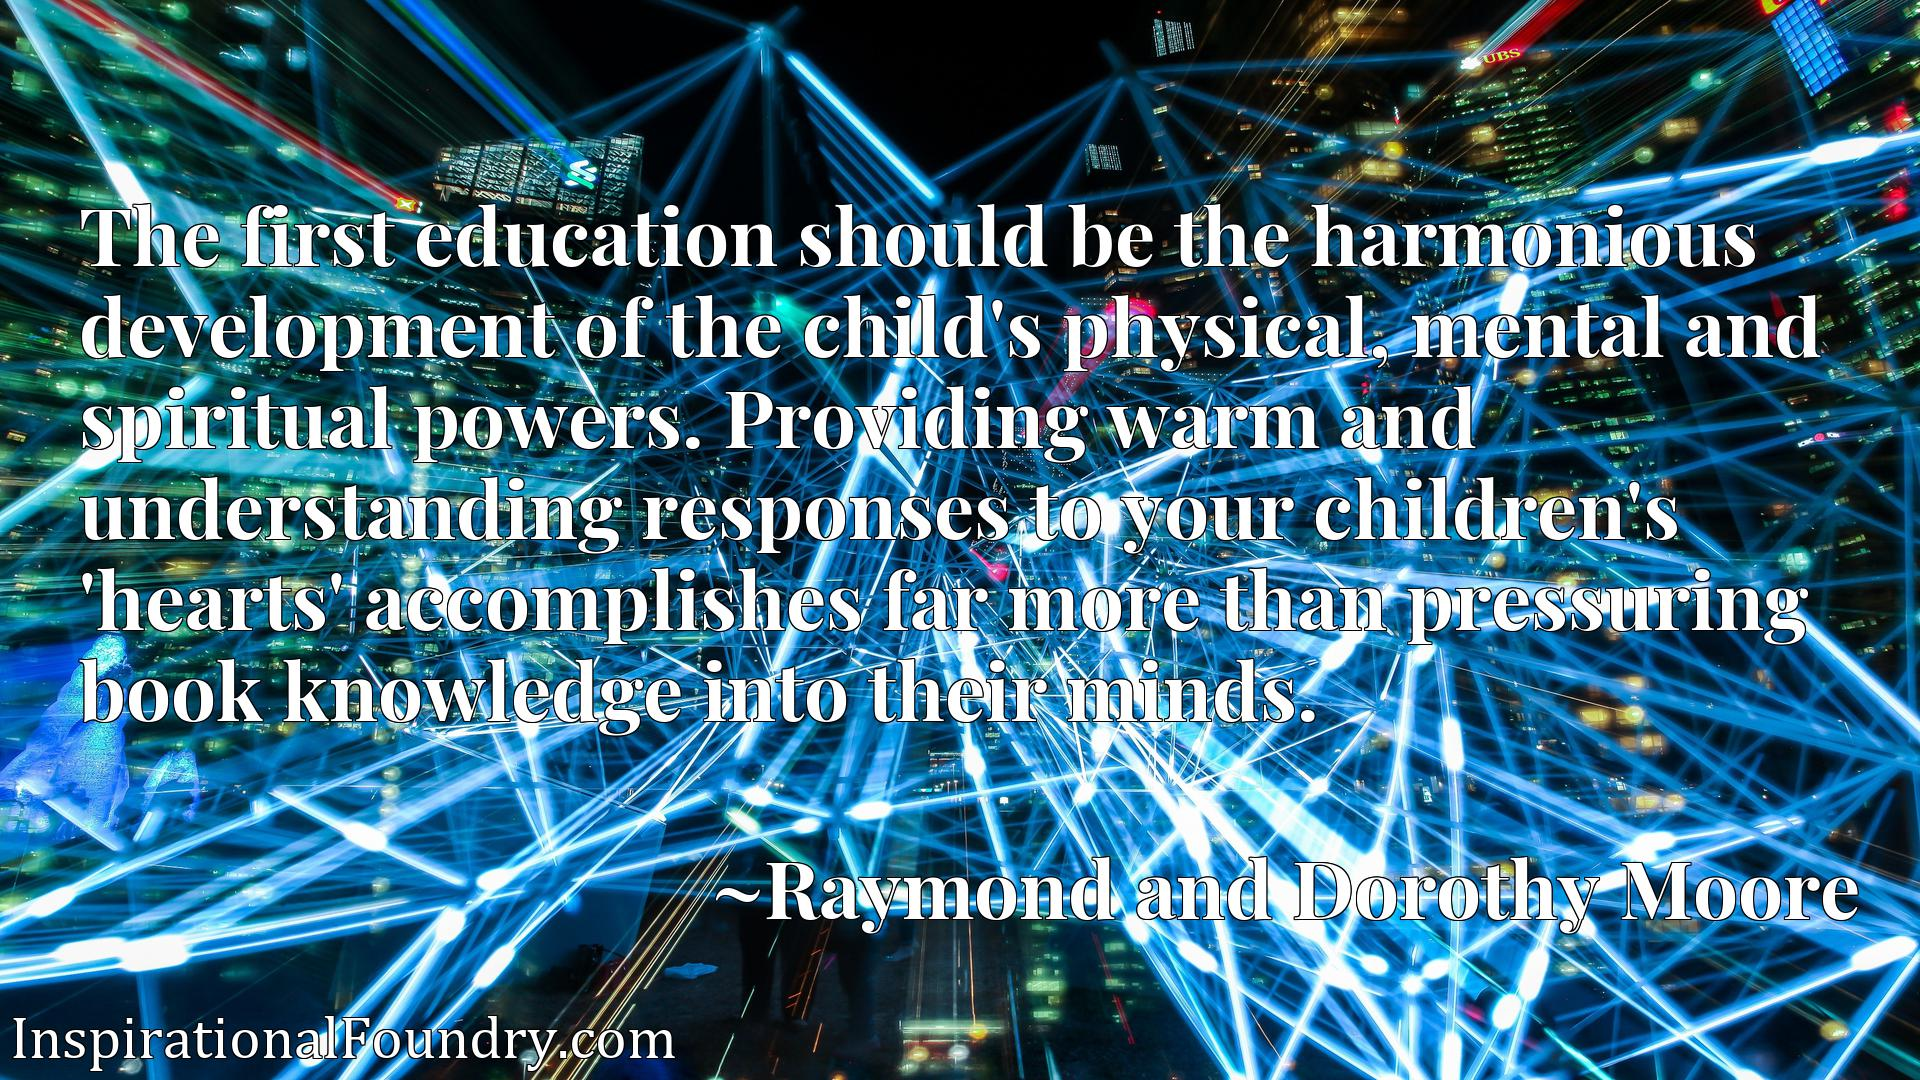 The first education should be the harmonious development of the child's physical, mental and spiritual powers. Providing warm and understanding responses to your children's 'hearts' accomplishes far more than pressuring book knowledge into their minds.